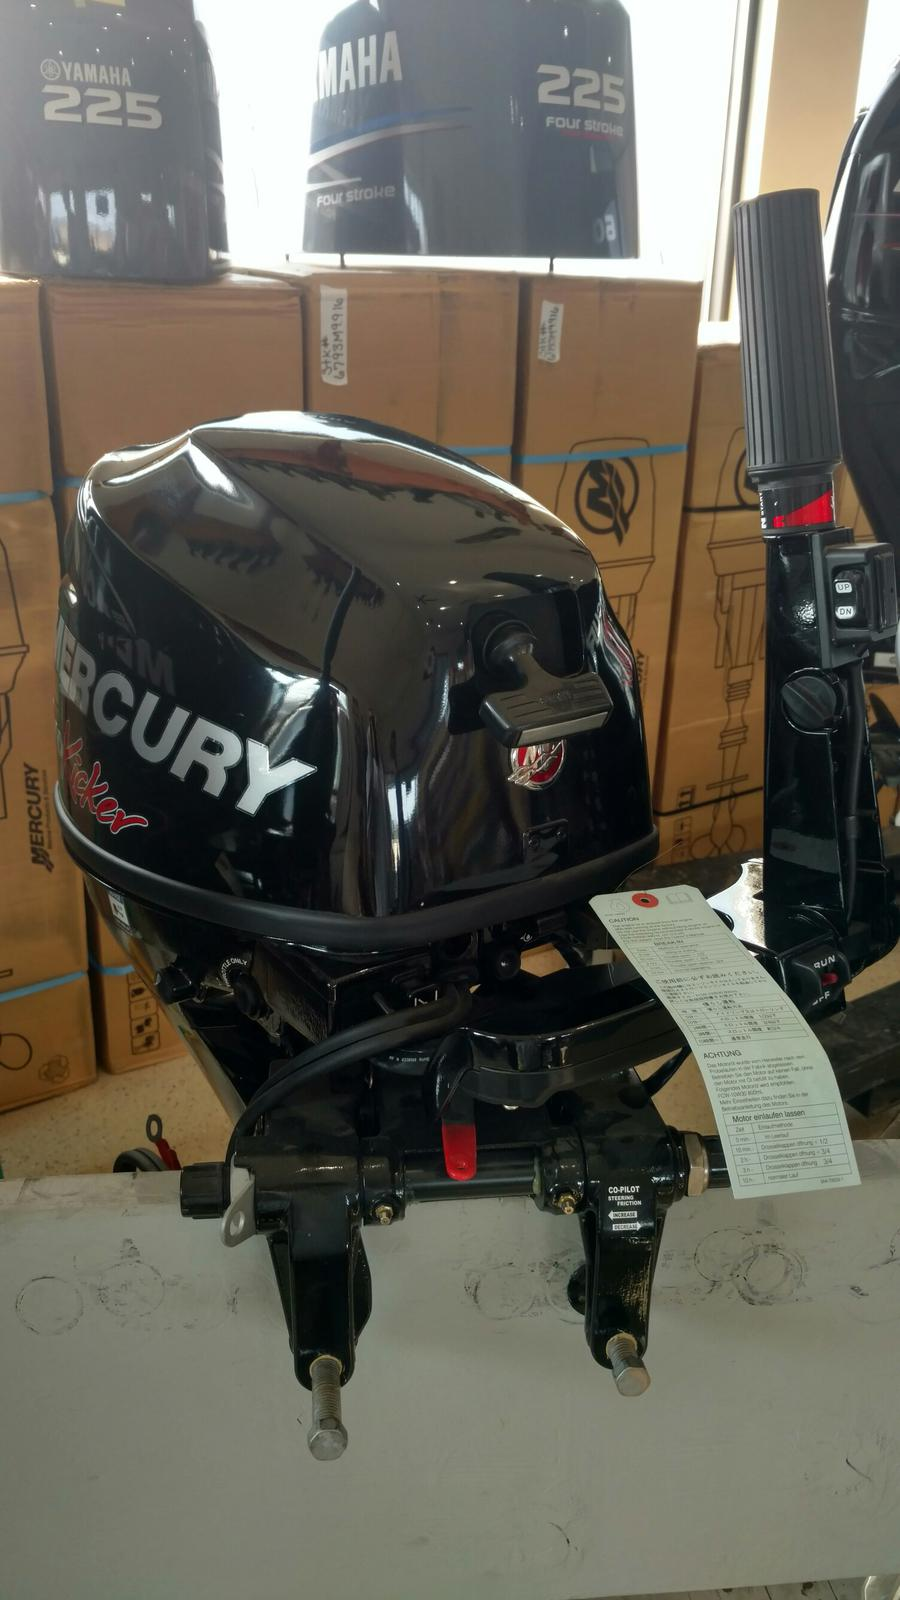 2015 Mercury FourStroke 9 9 HP ProKicker - 20 in  Shaft for sale in